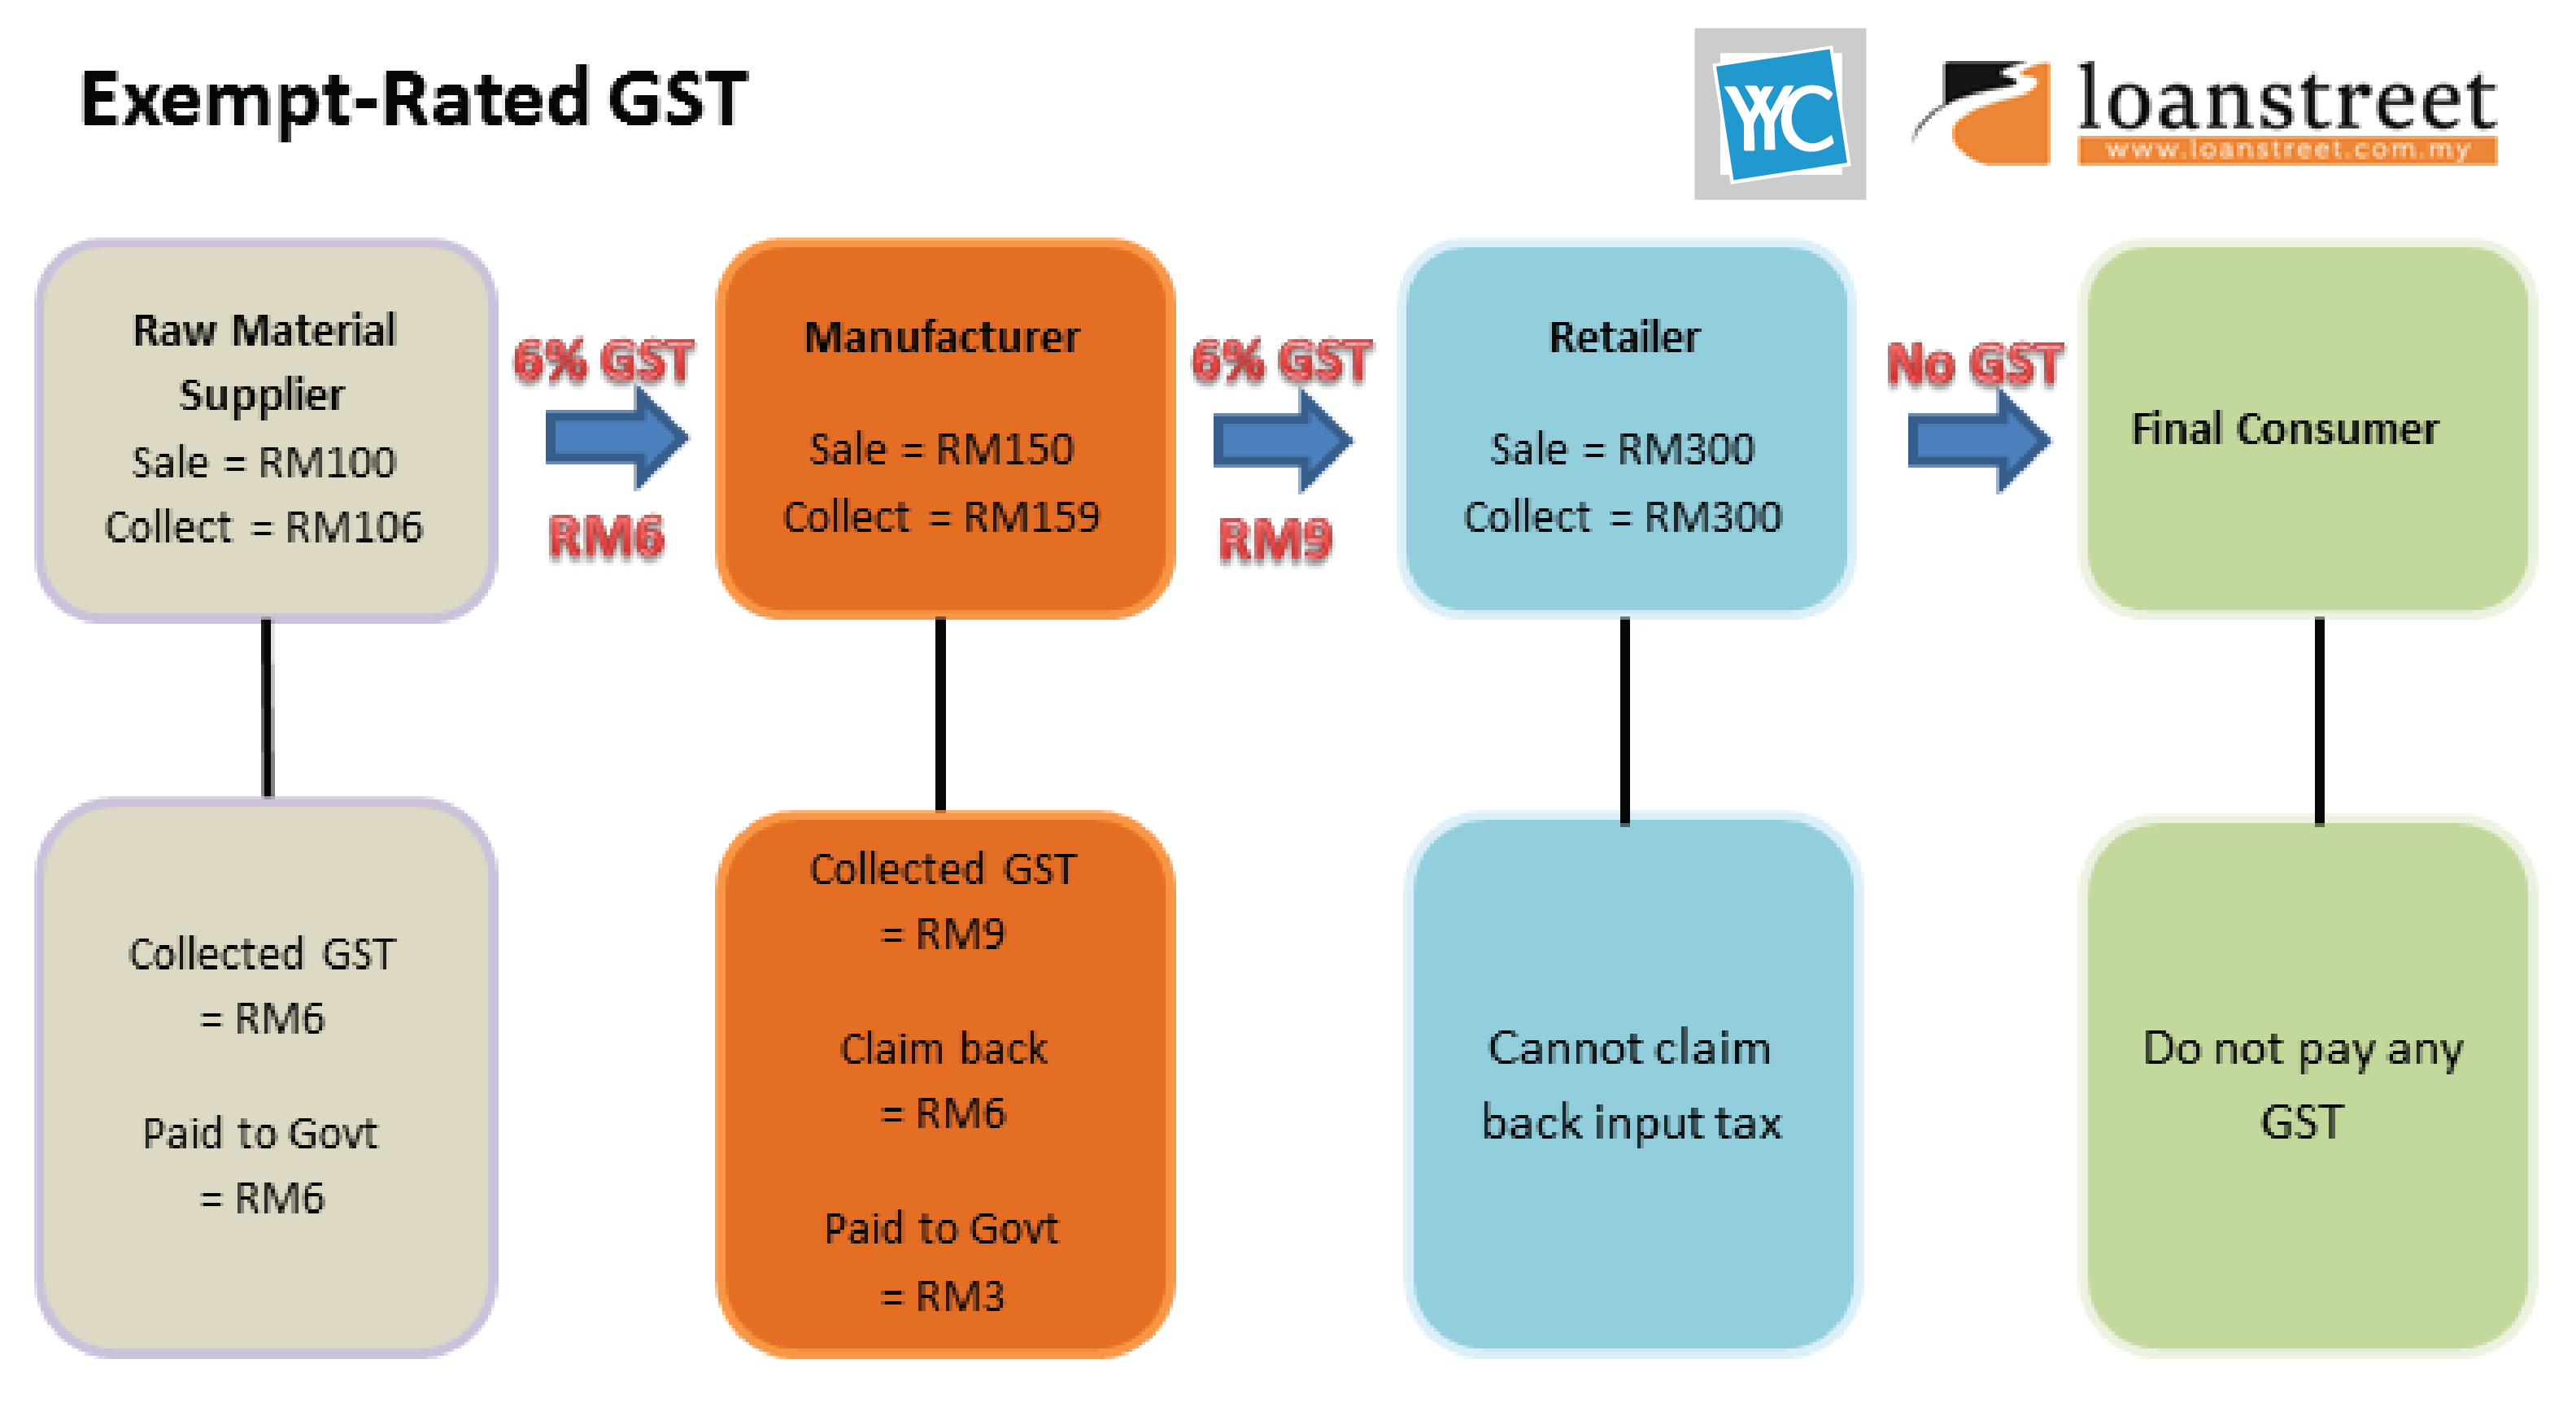 Exempt-Rated GST